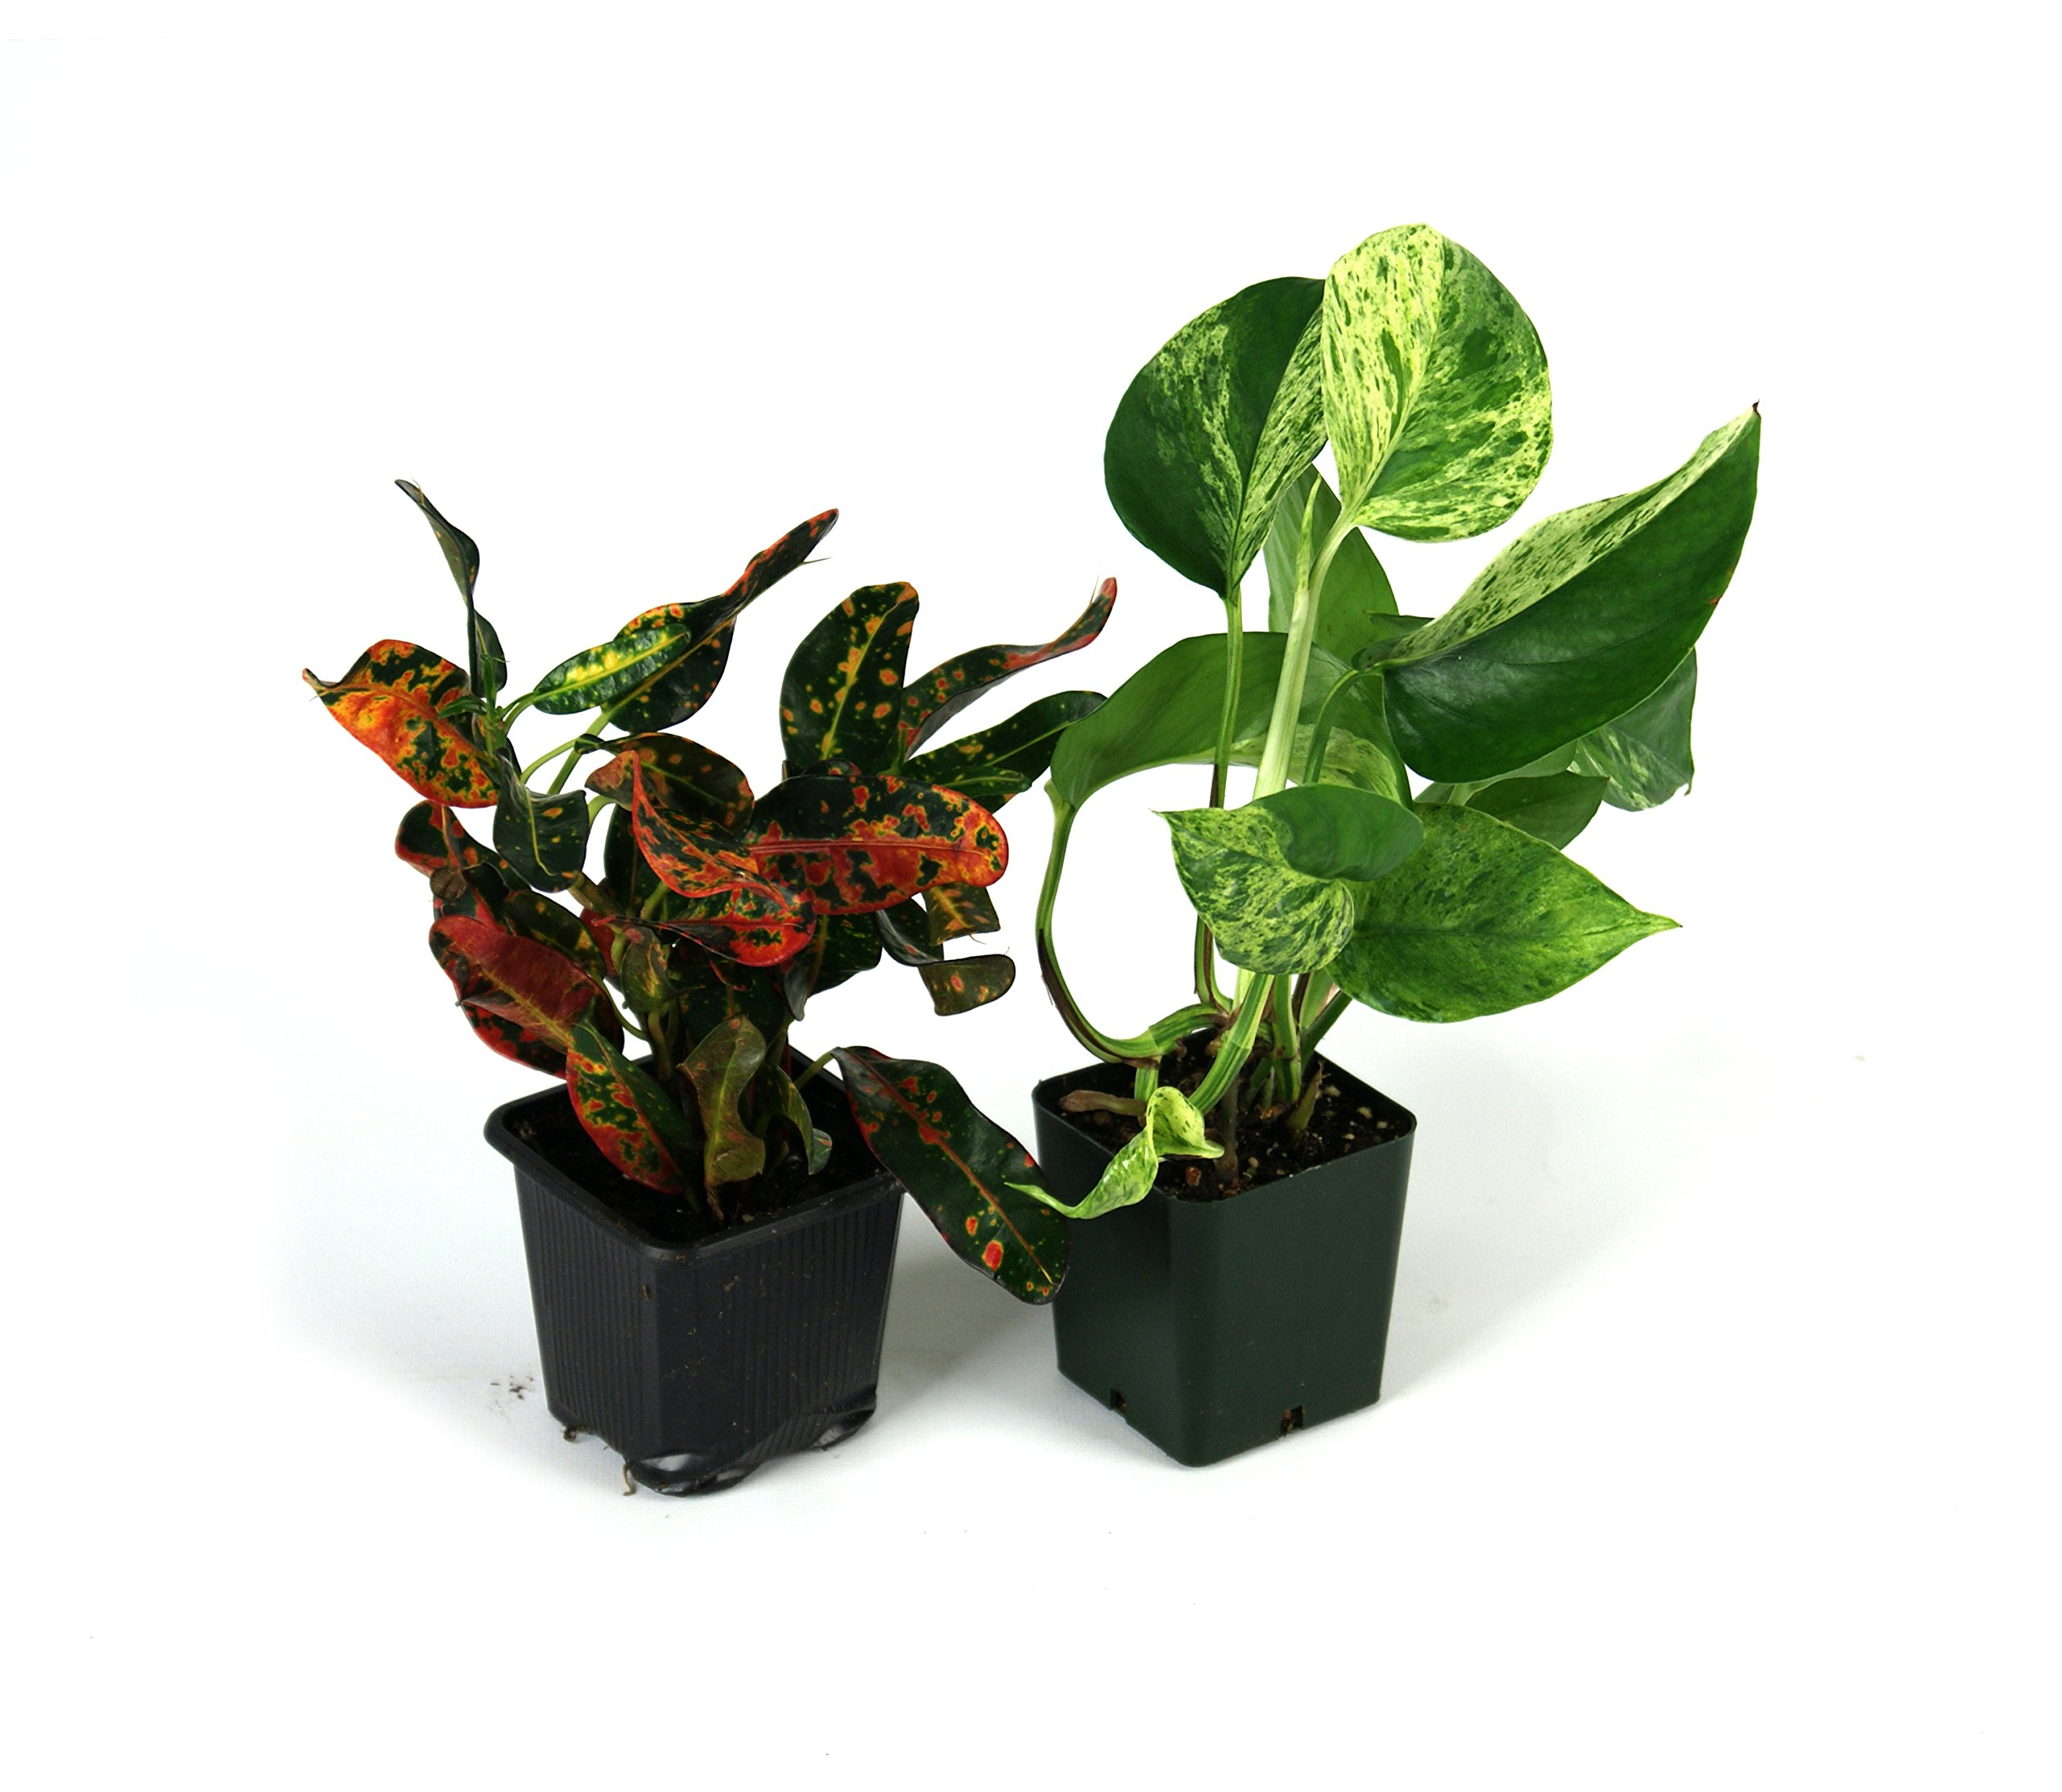 Small Crested Gecko Vivarium Plant Kit